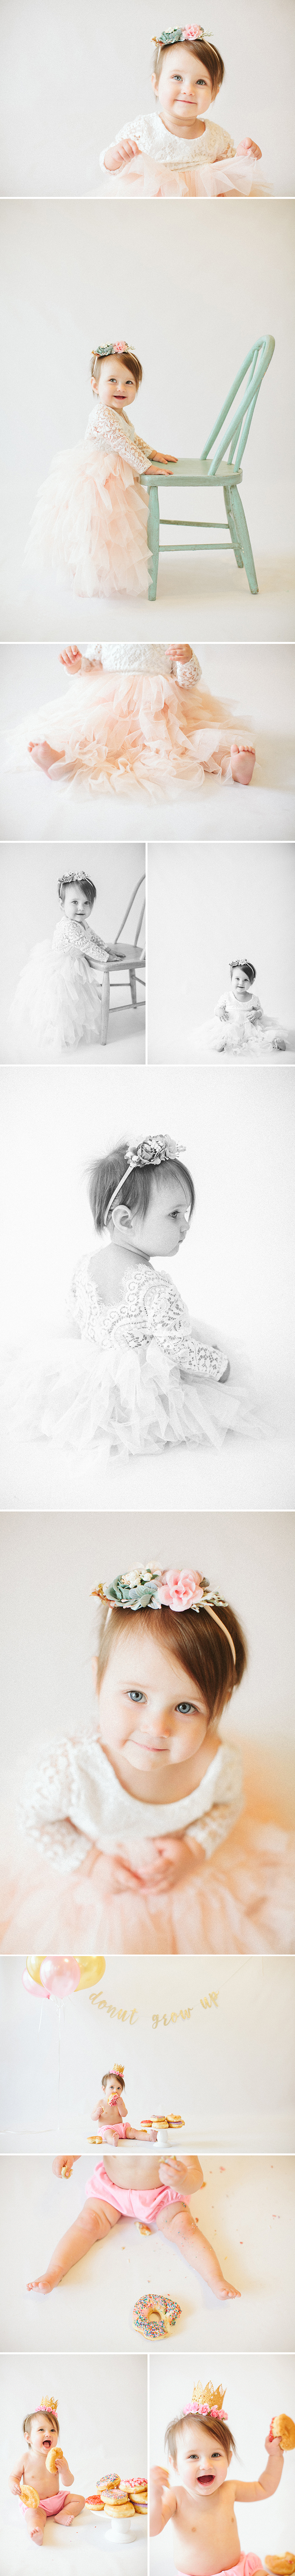 Juliettestudio1year.jpg